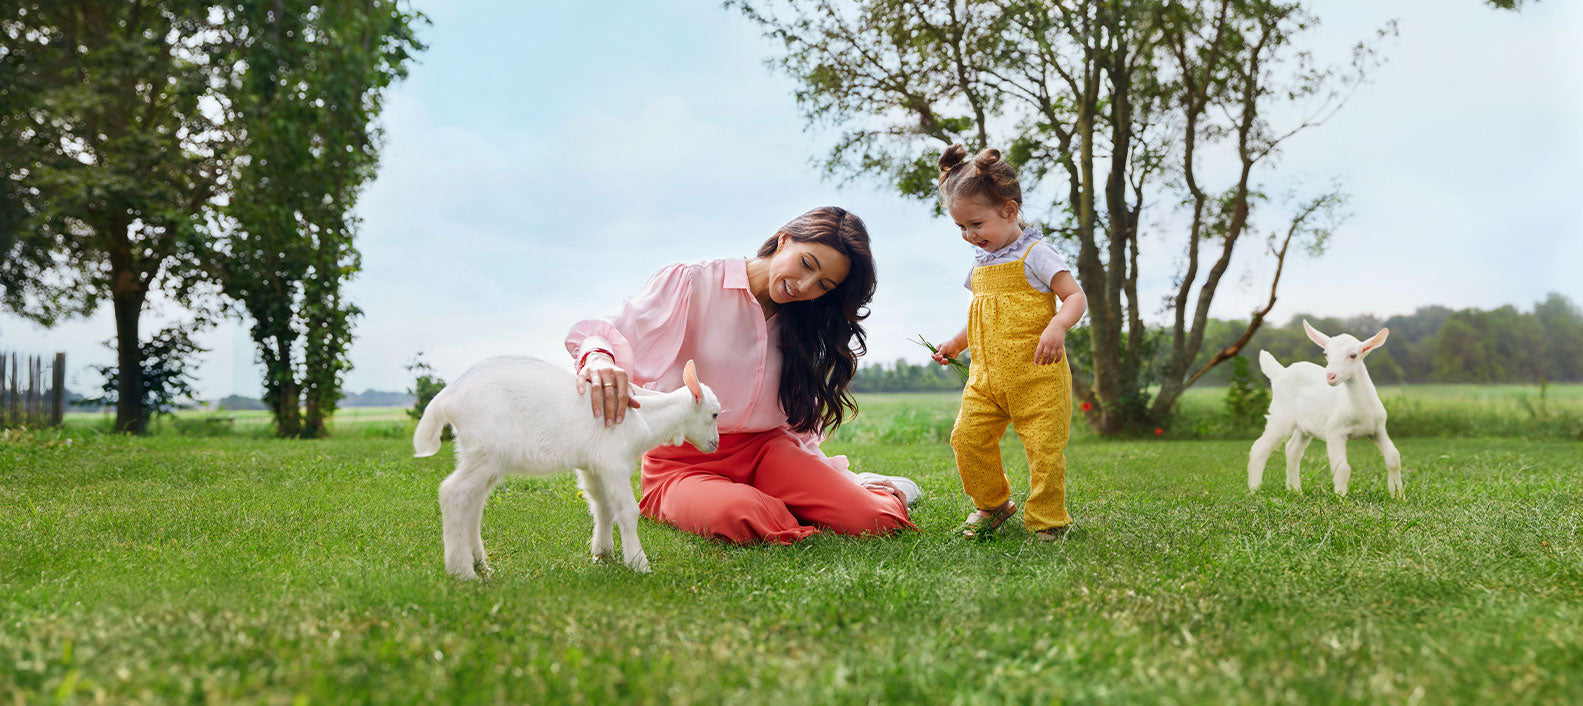 Woman petting goat beside happy toddler